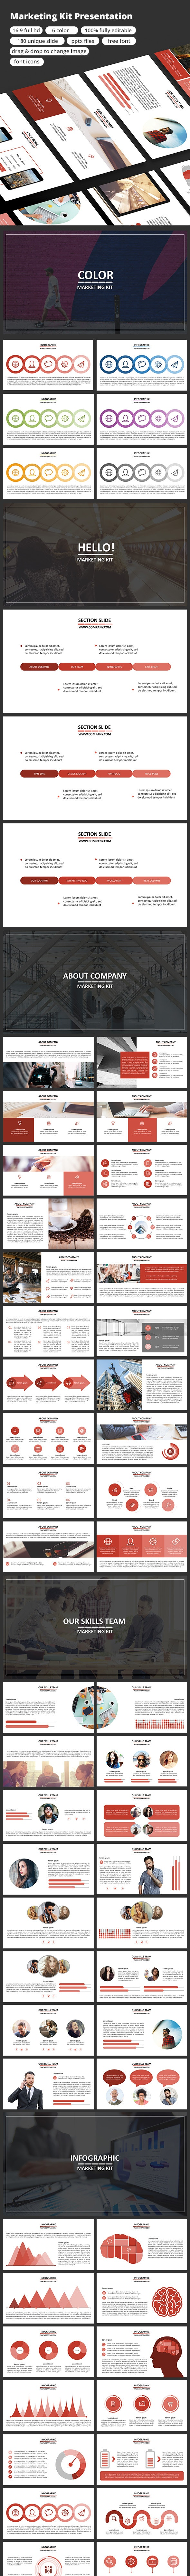 Marketing Kit - PowerPoint Presentation - Business PowerPoint Templates